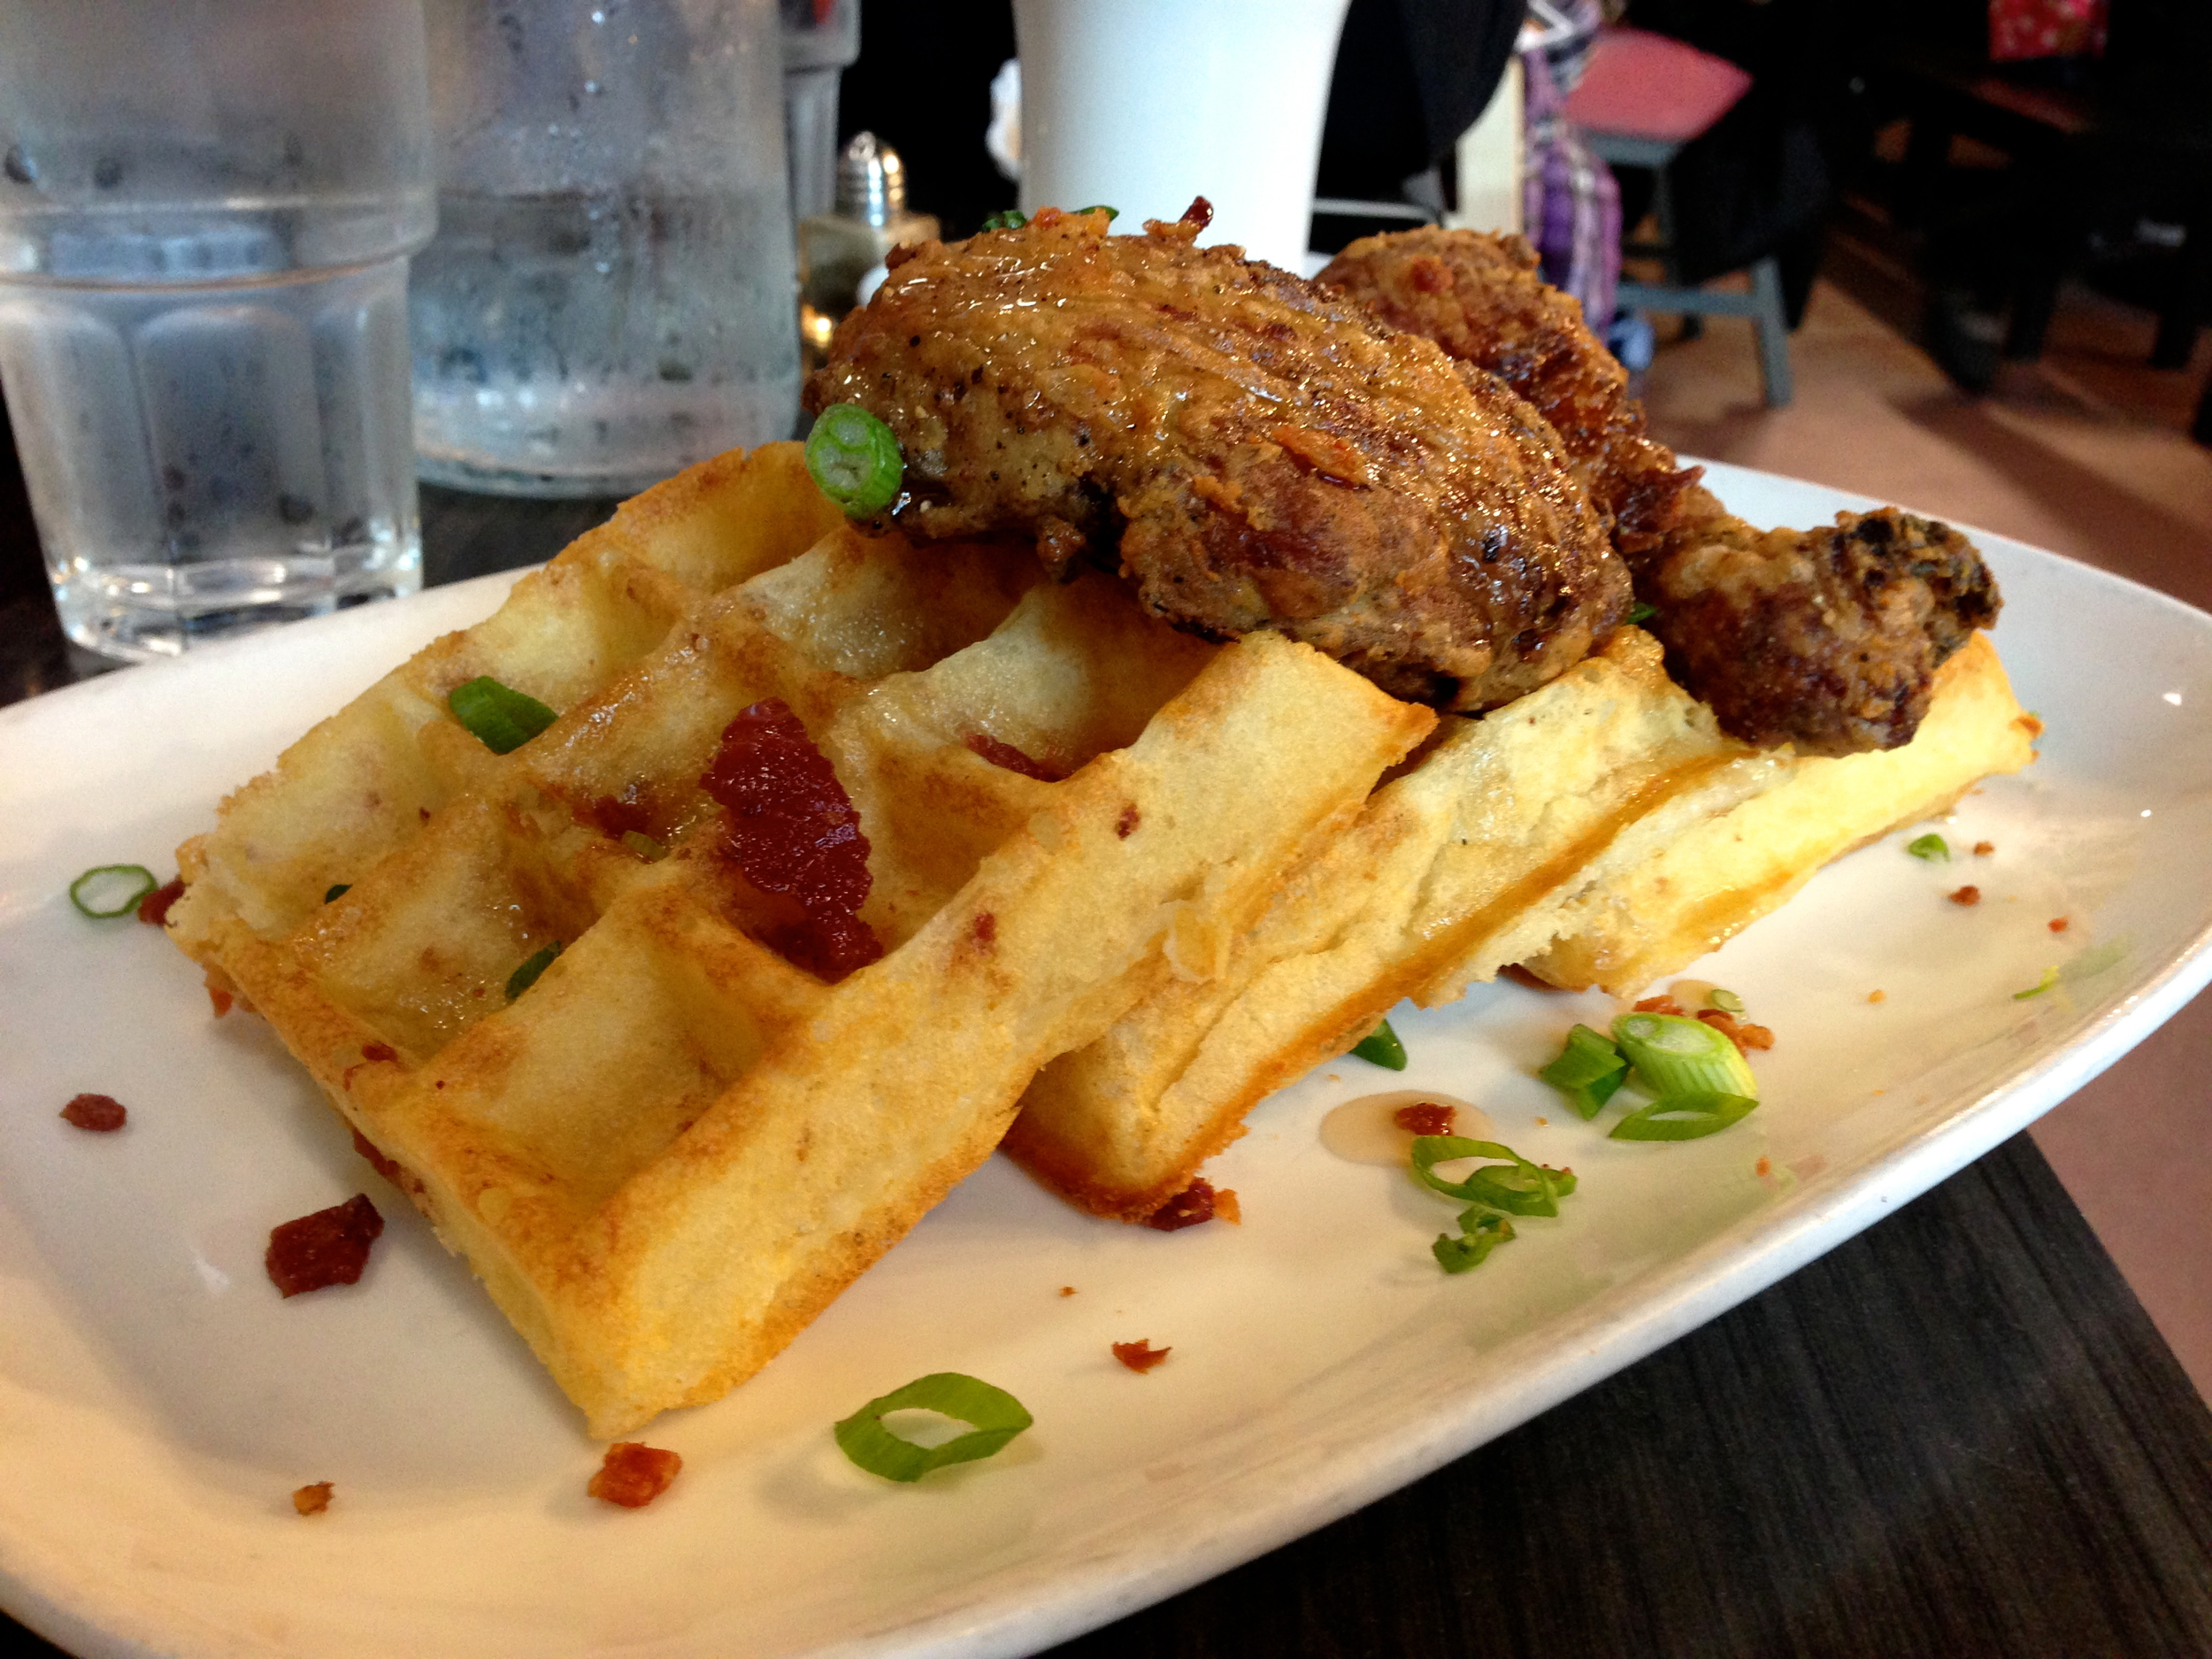 Figure 3. Chicken and bacon waffles